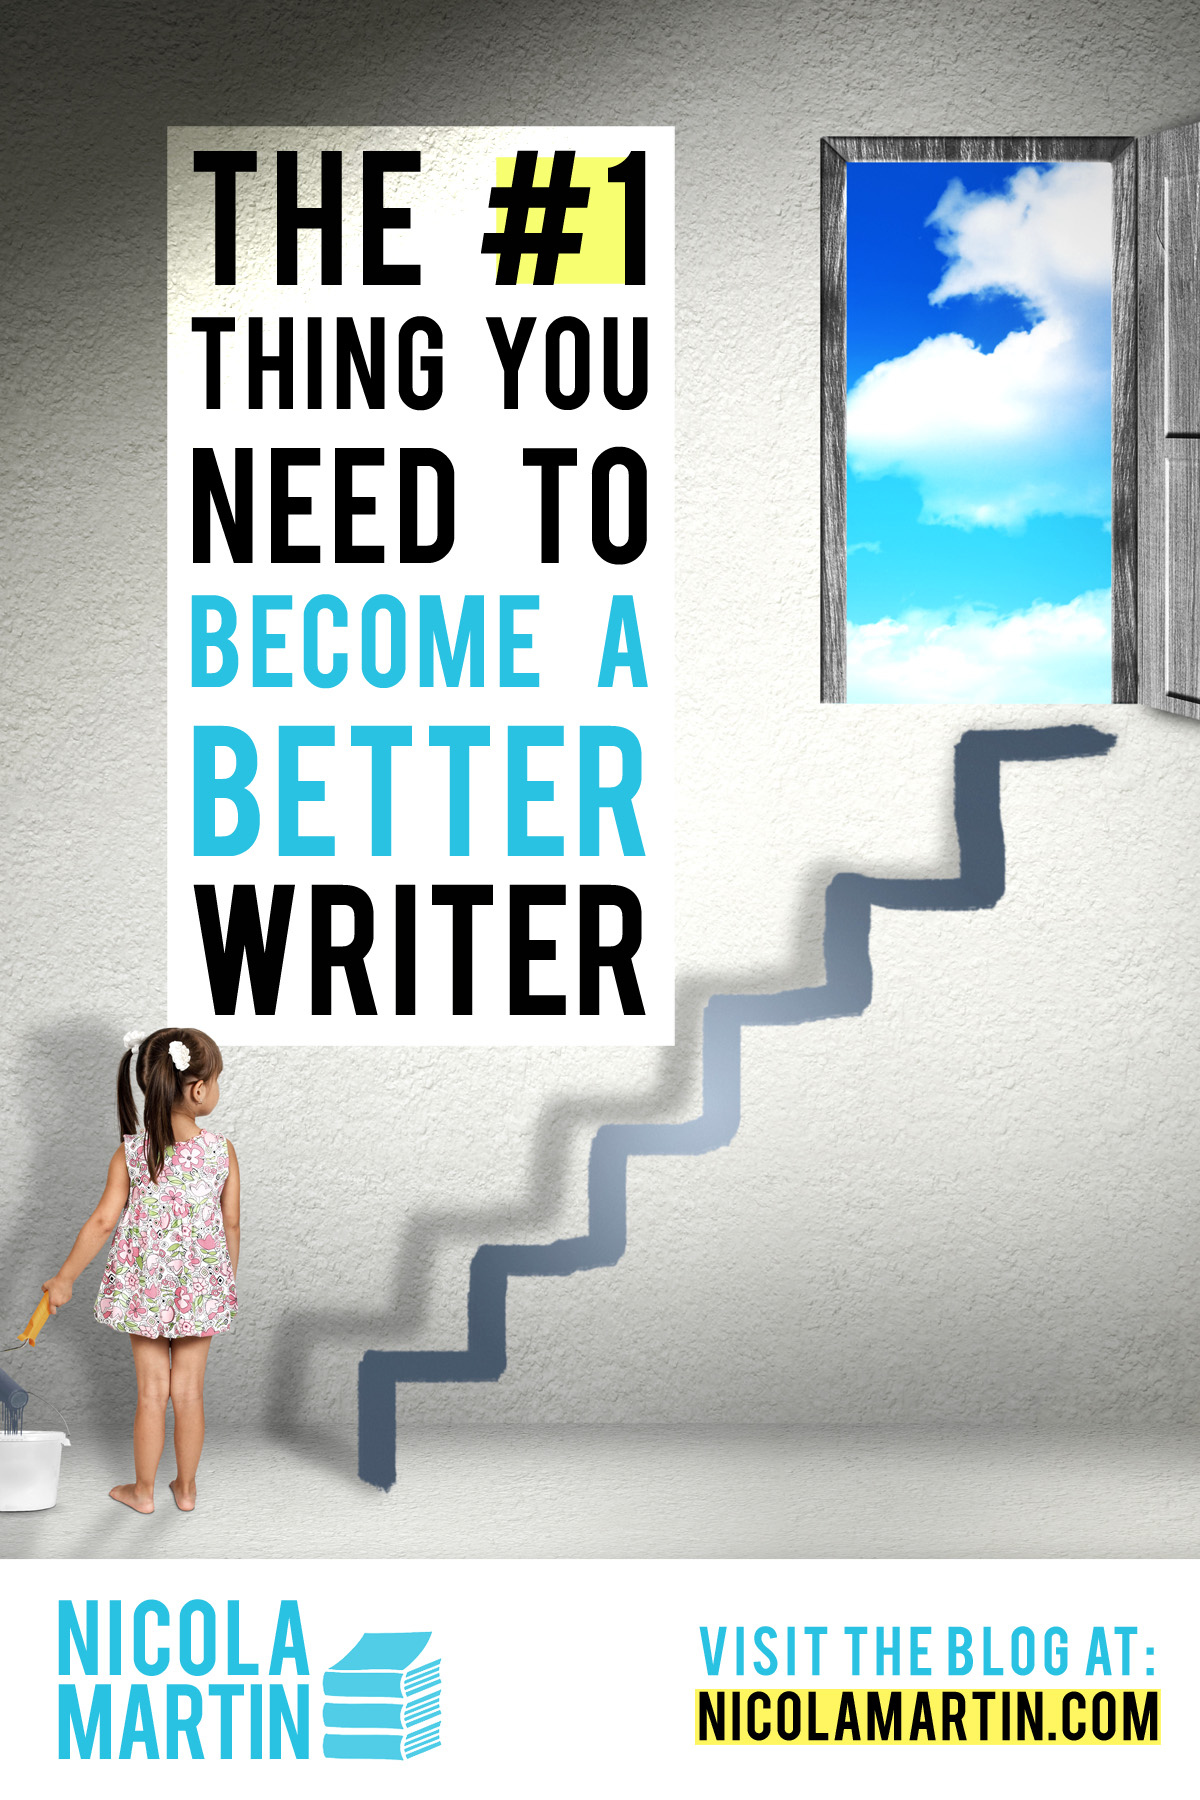 The number one thing you need to become a better writer